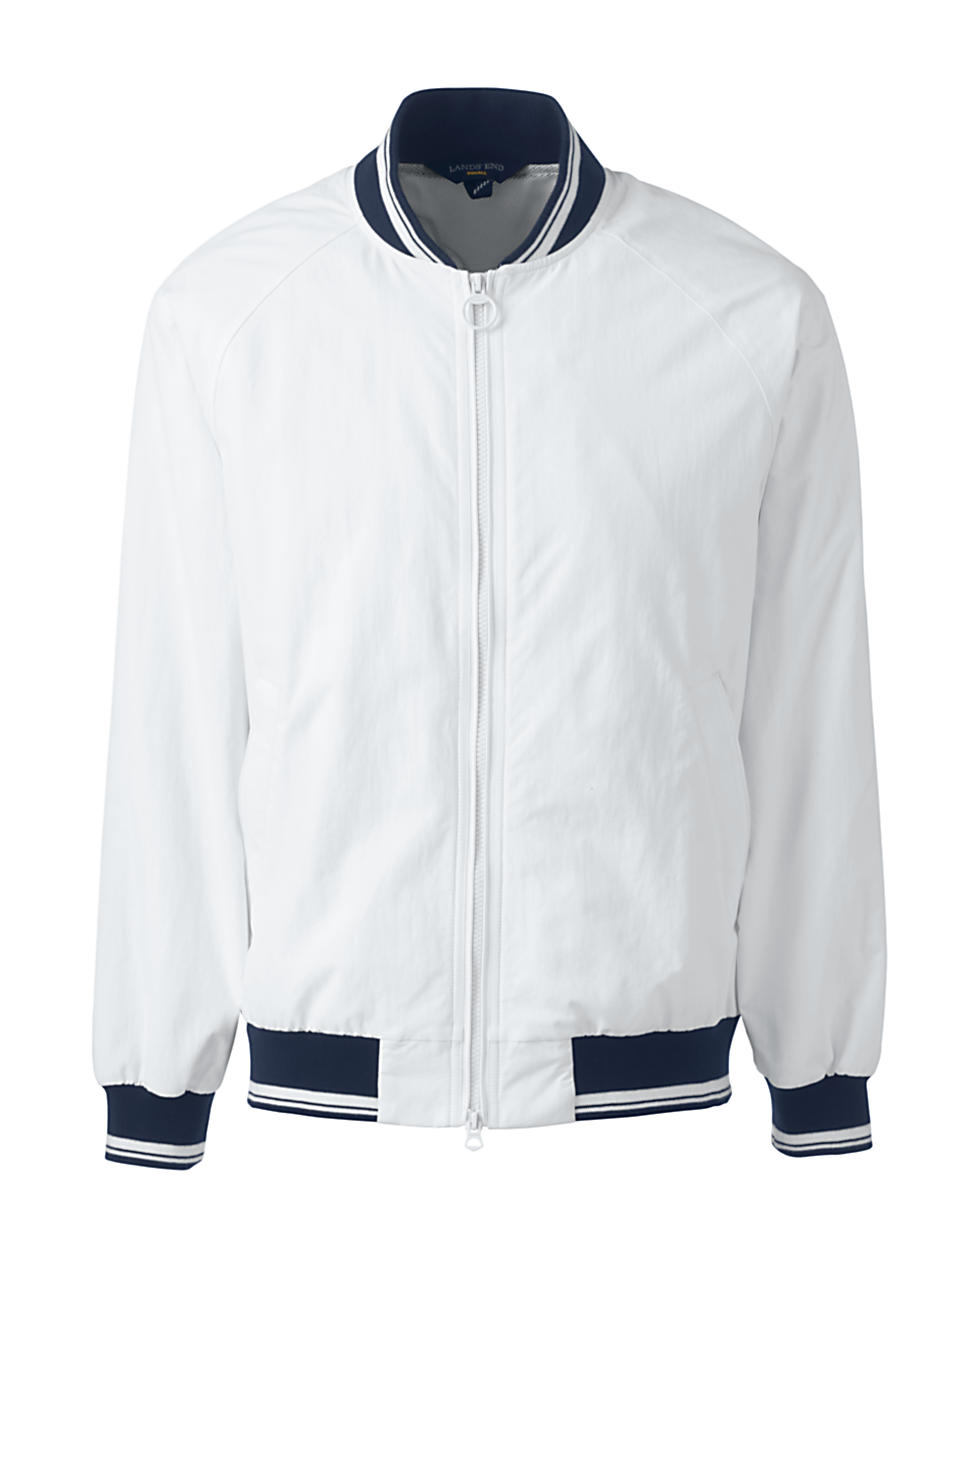 Lands' End Men's Squall Varsity Jacket (White)